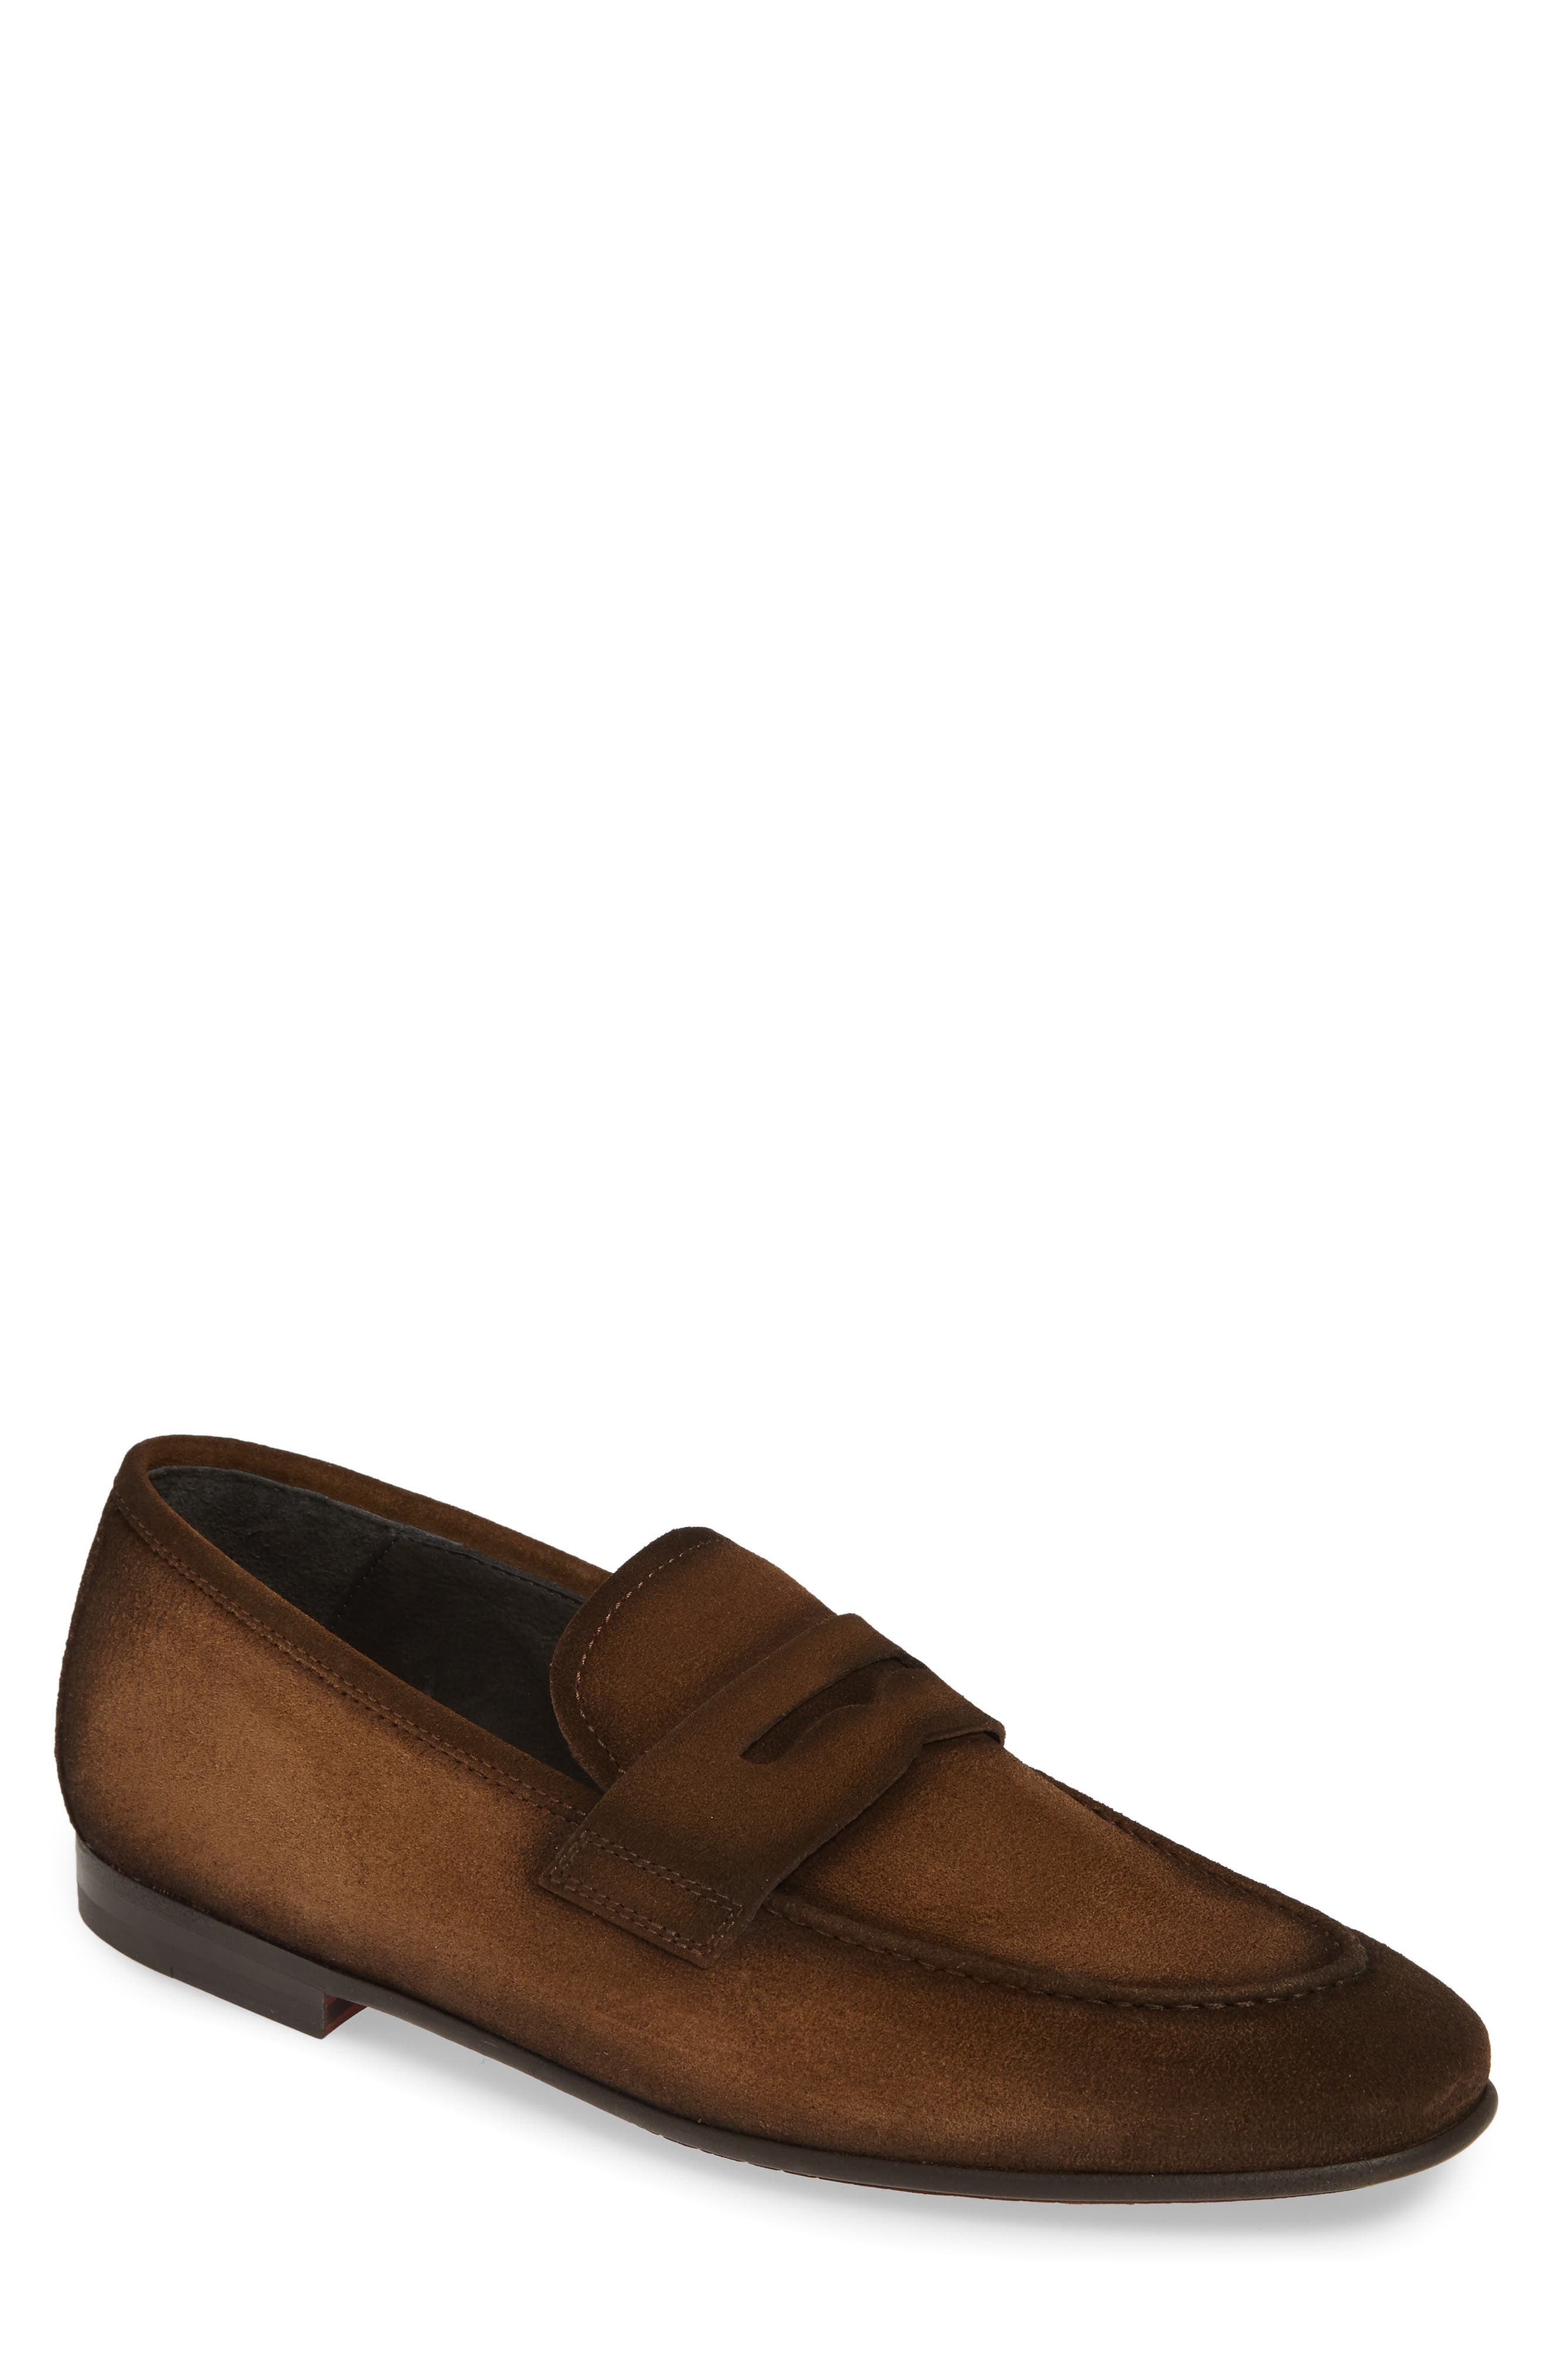 To Boot New York Enzo Apron Toe Penny Loafer, Brown